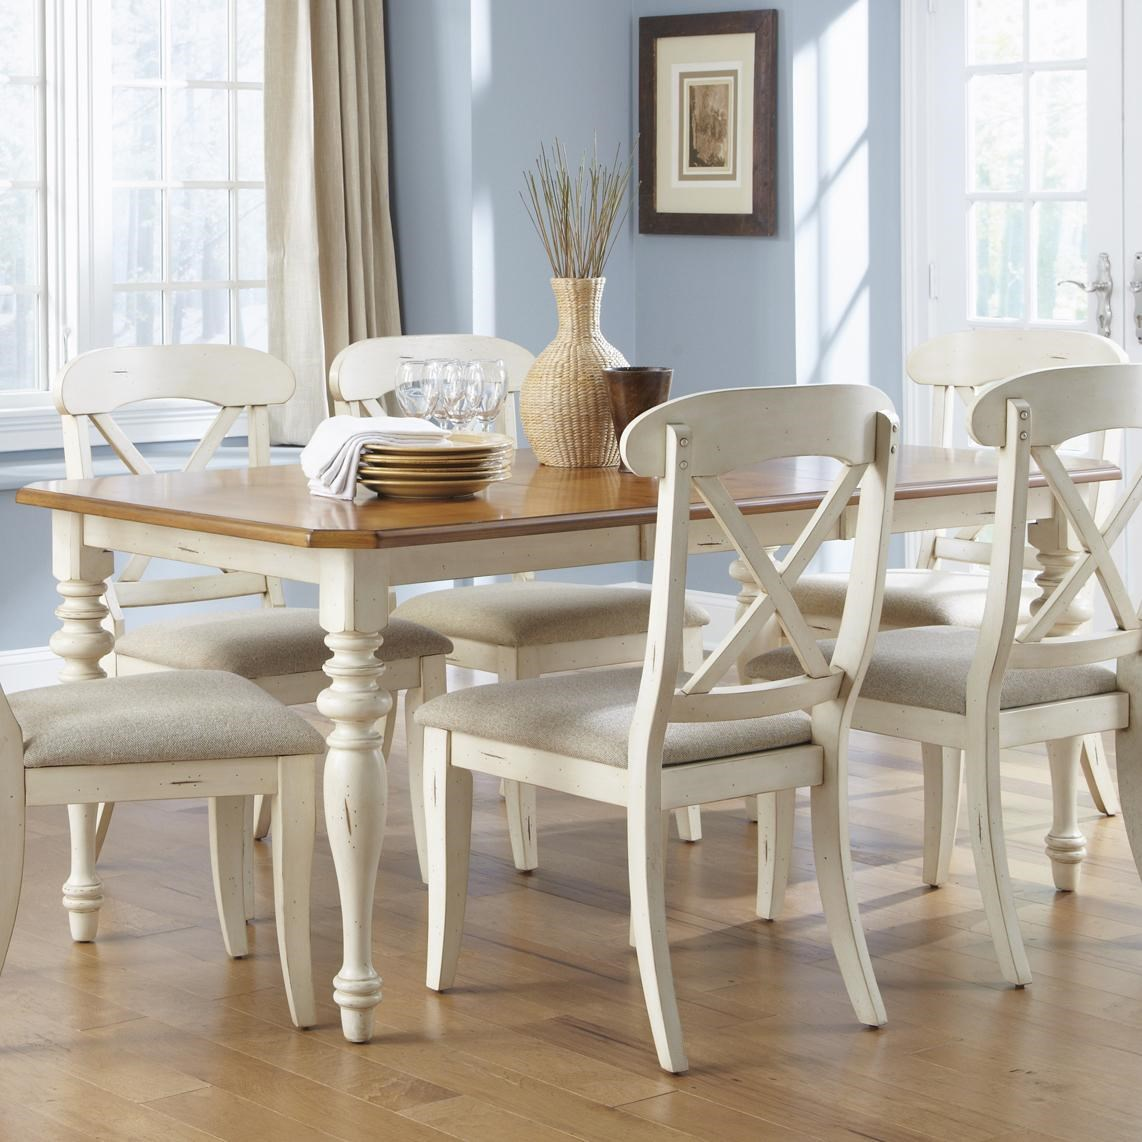 Liberty Furniture Ocean Isle Rectangular Leg Dining Table With 18 Inch Leaf